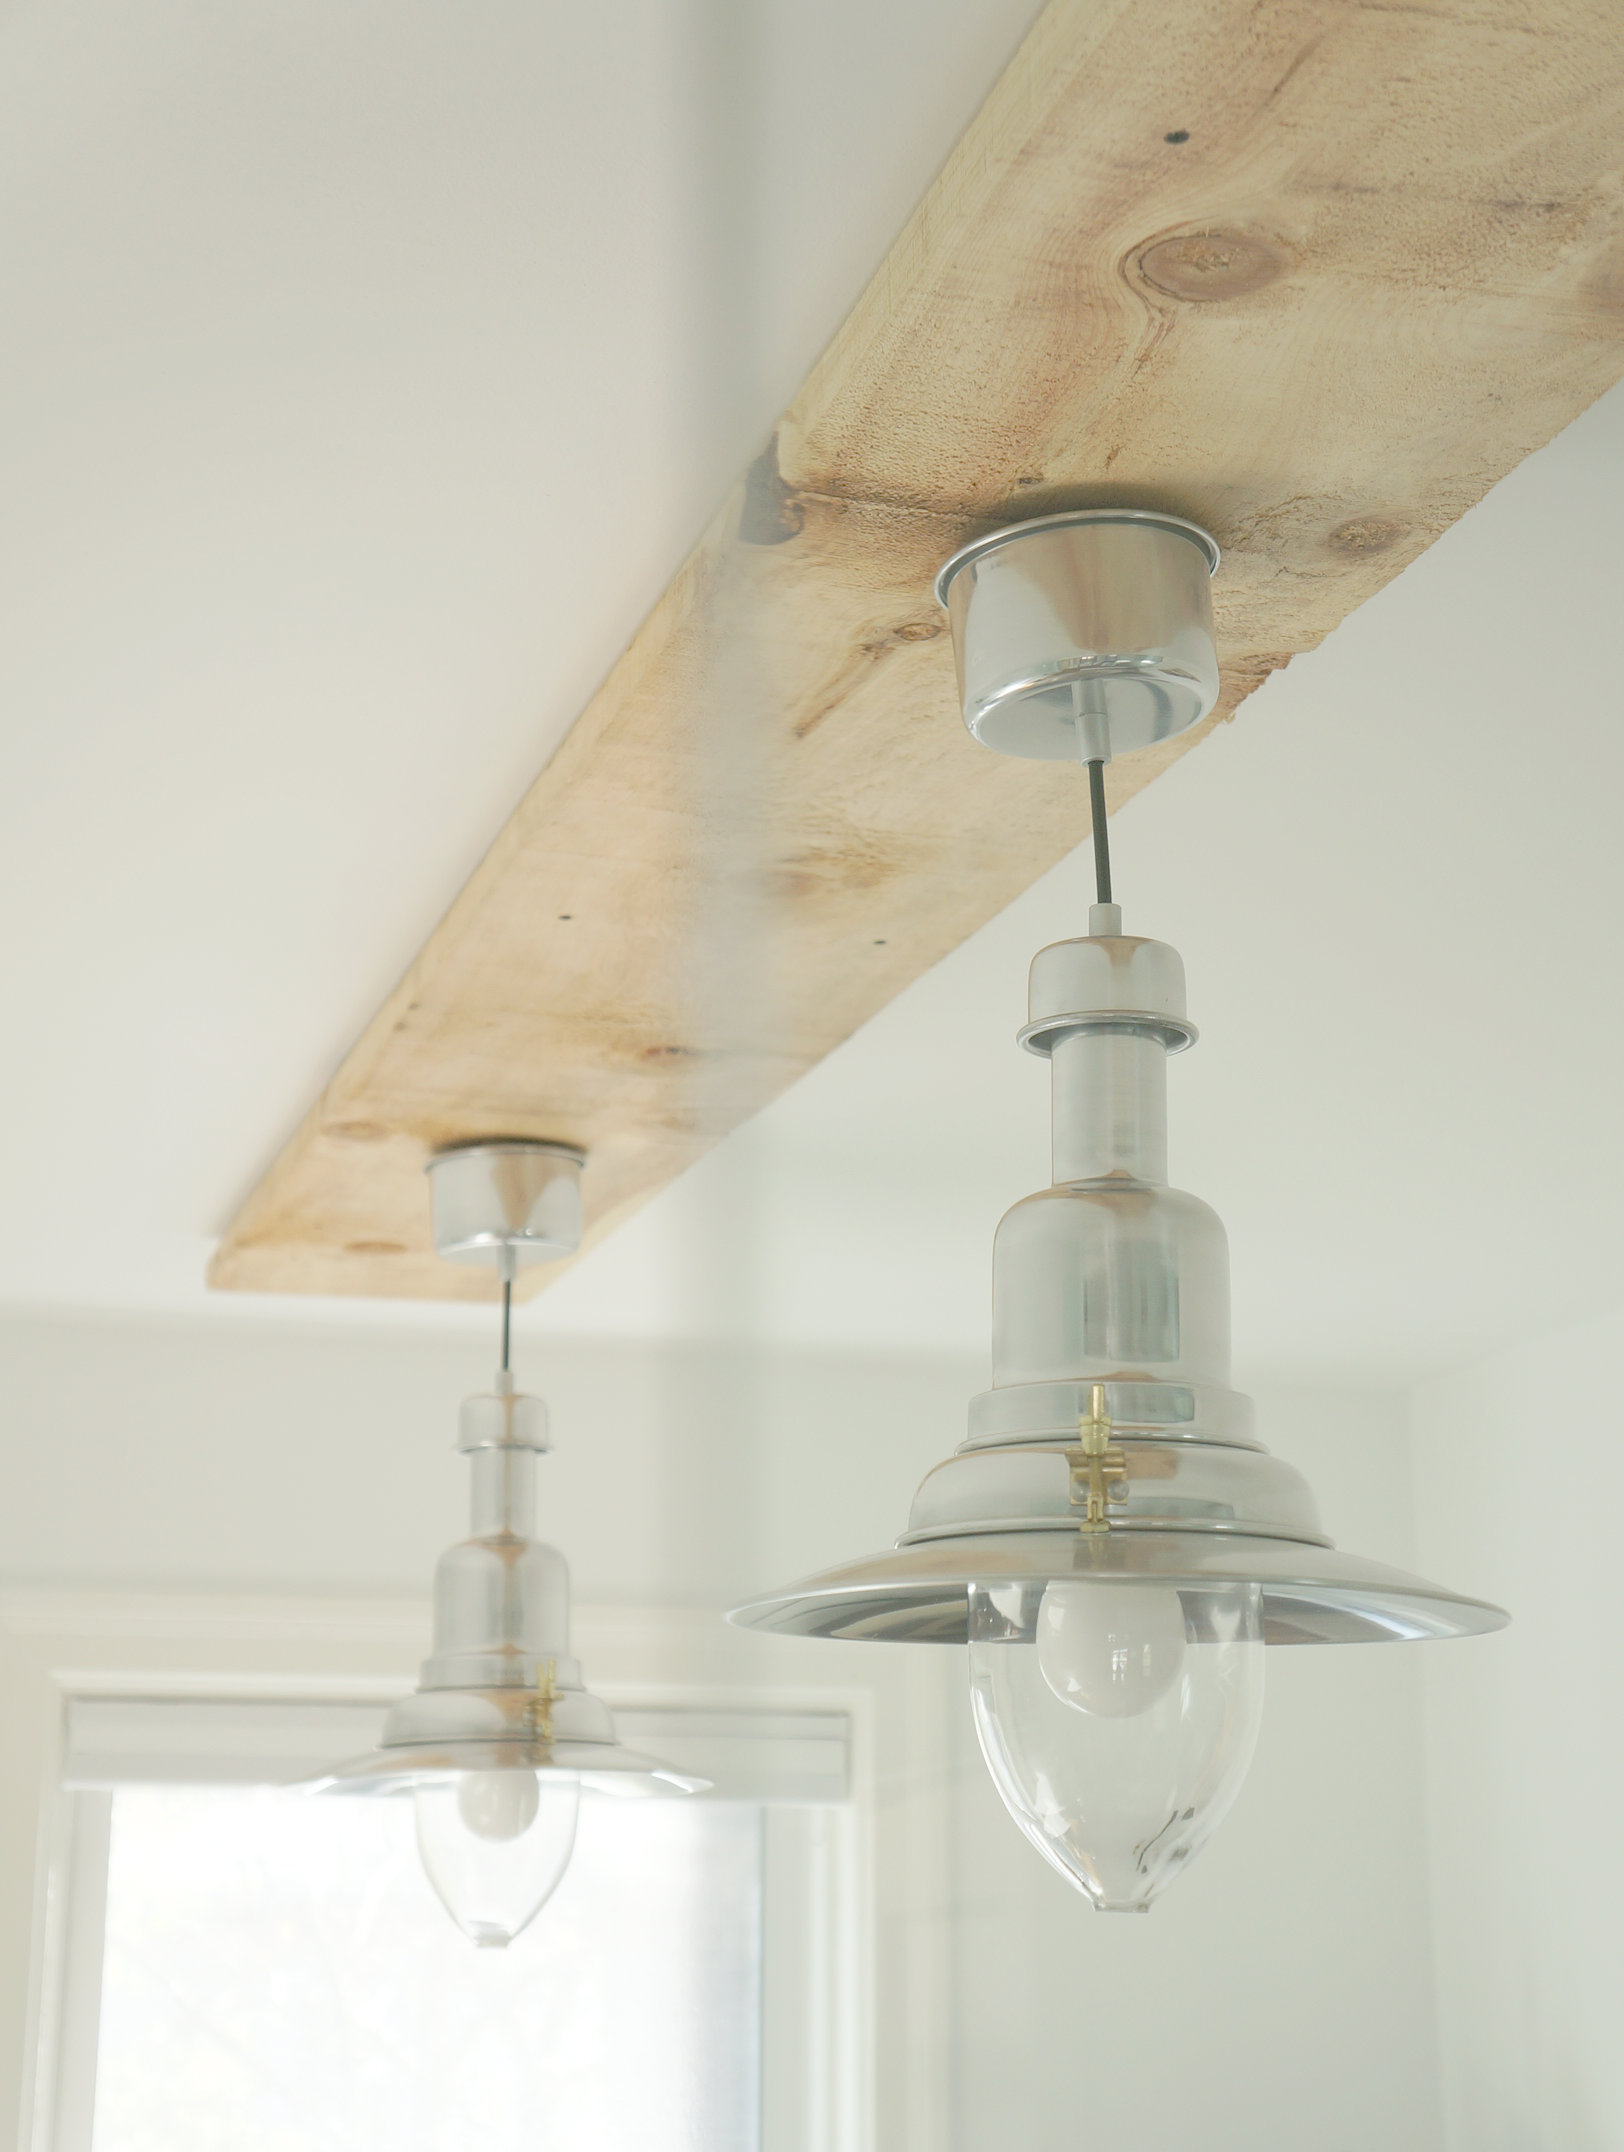 Bathroom Light Fixtures Kijiji Toronto home | our toronto life